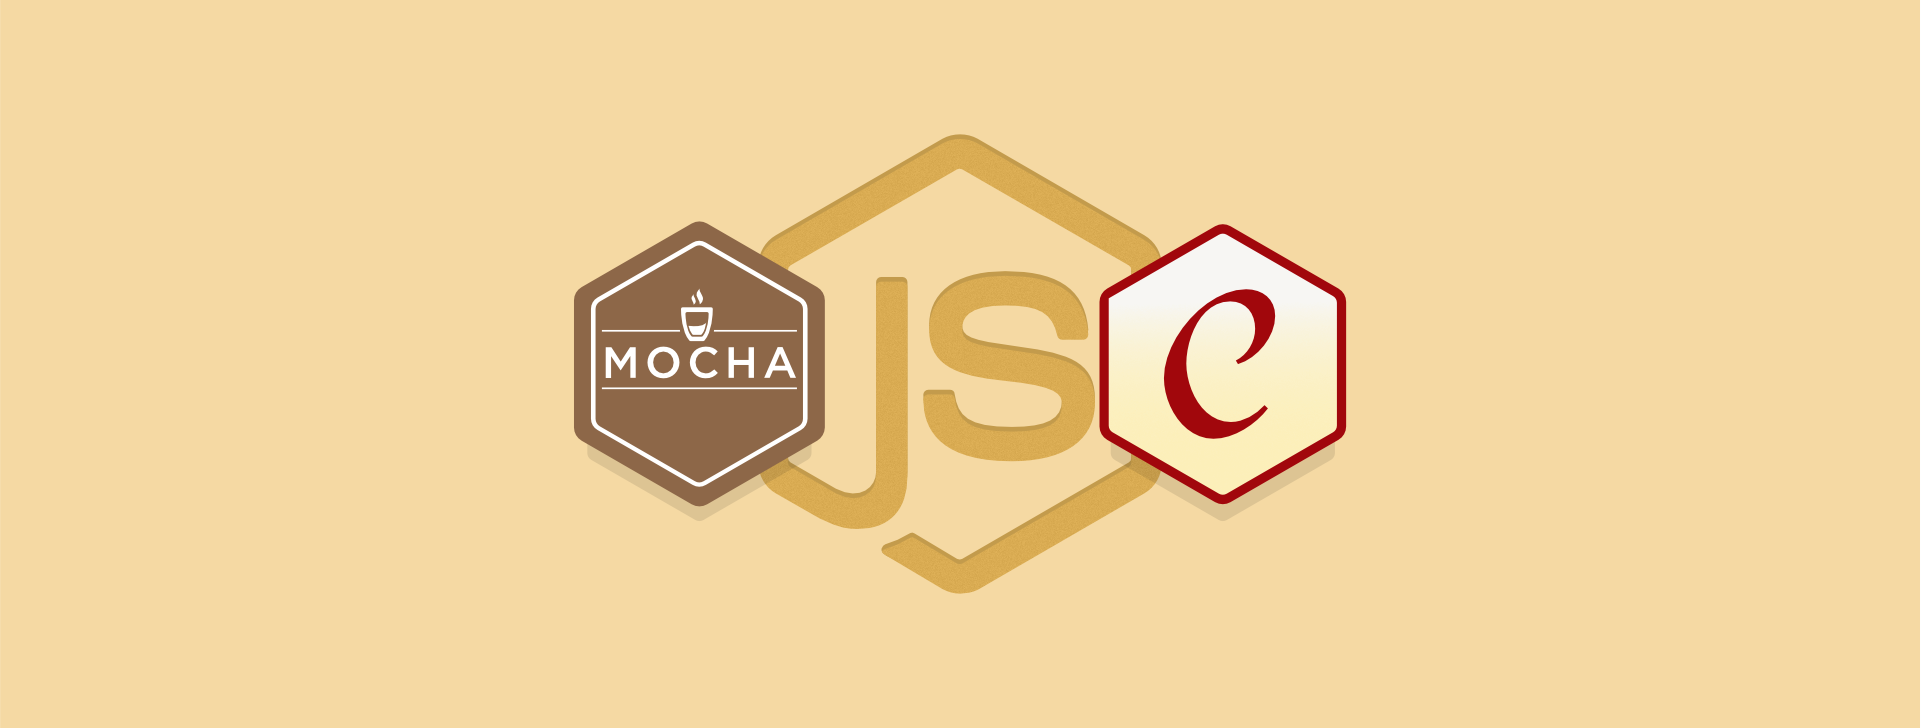 How to run Mocha/Chai unit tests on Node js apps - By